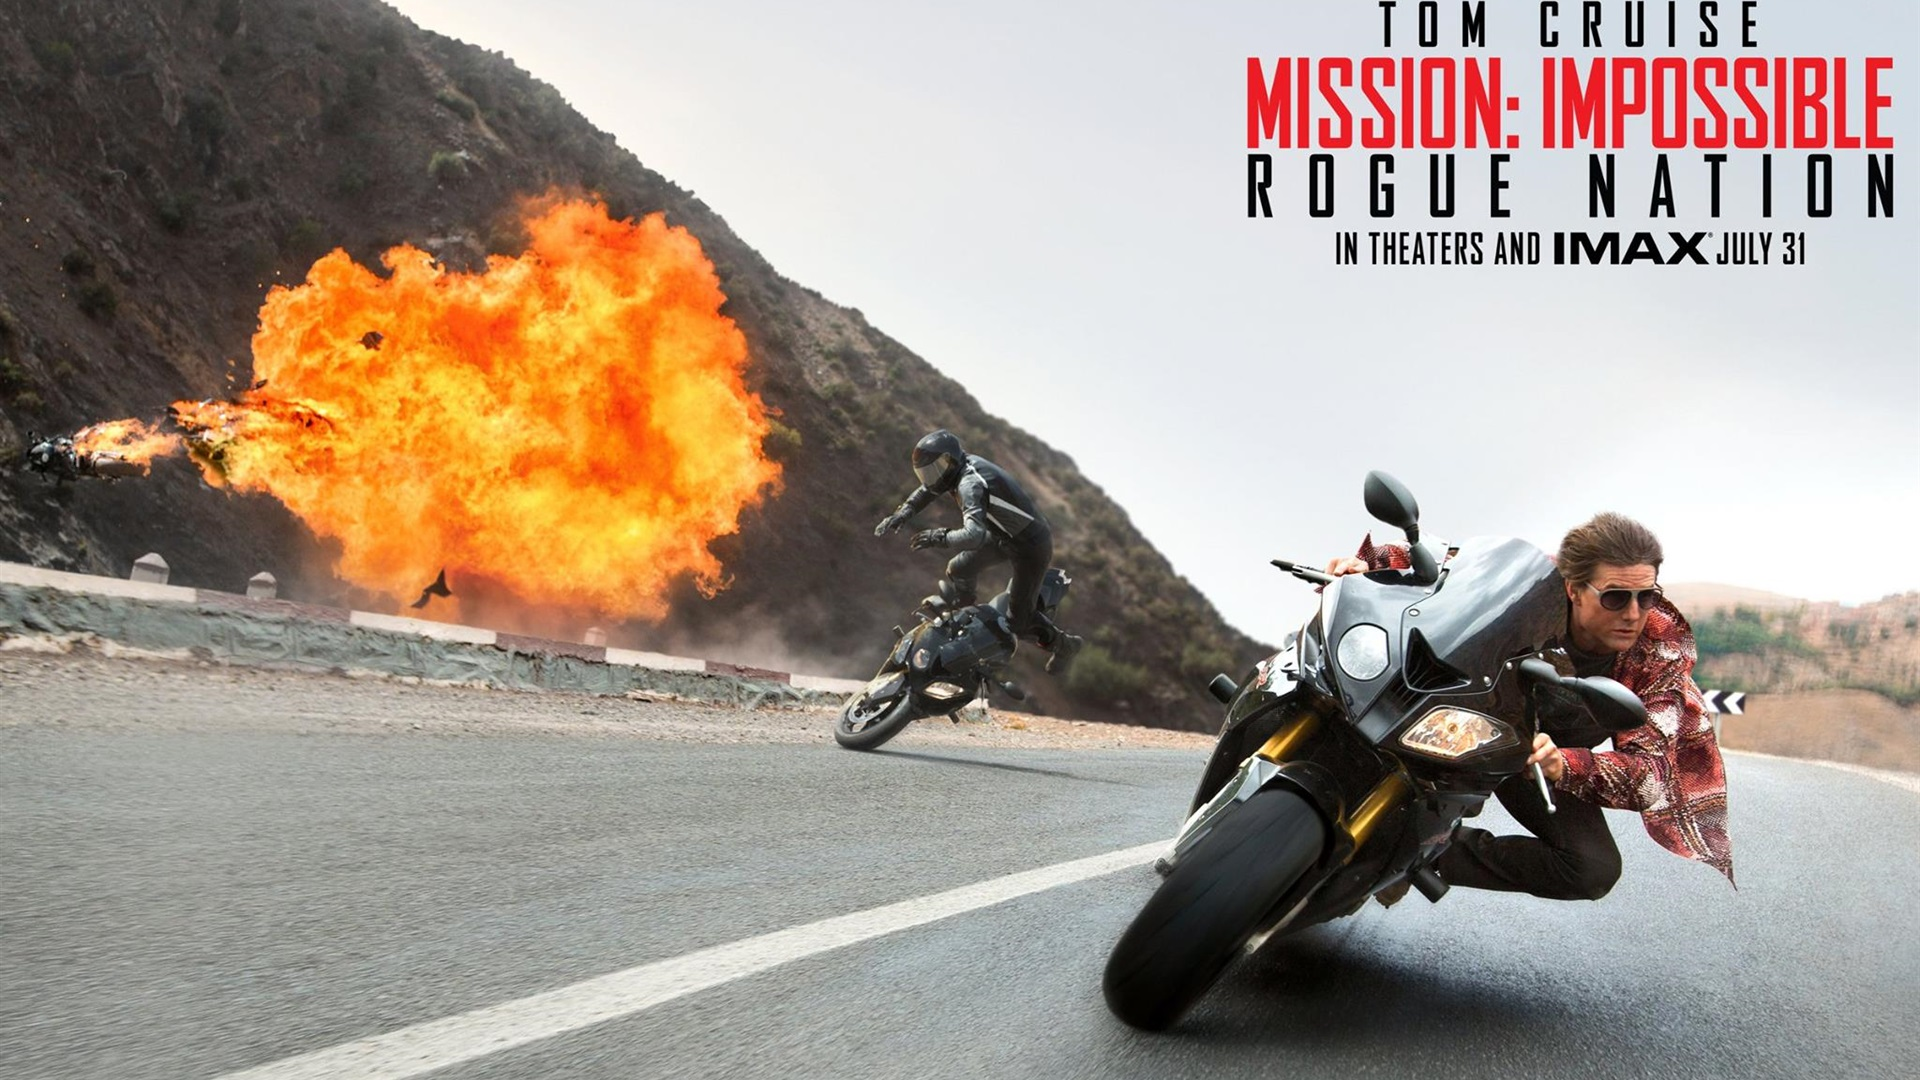 wallpaper mission impossible rogue nation 2015 movie 1920x1200 hd picture image. Black Bedroom Furniture Sets. Home Design Ideas